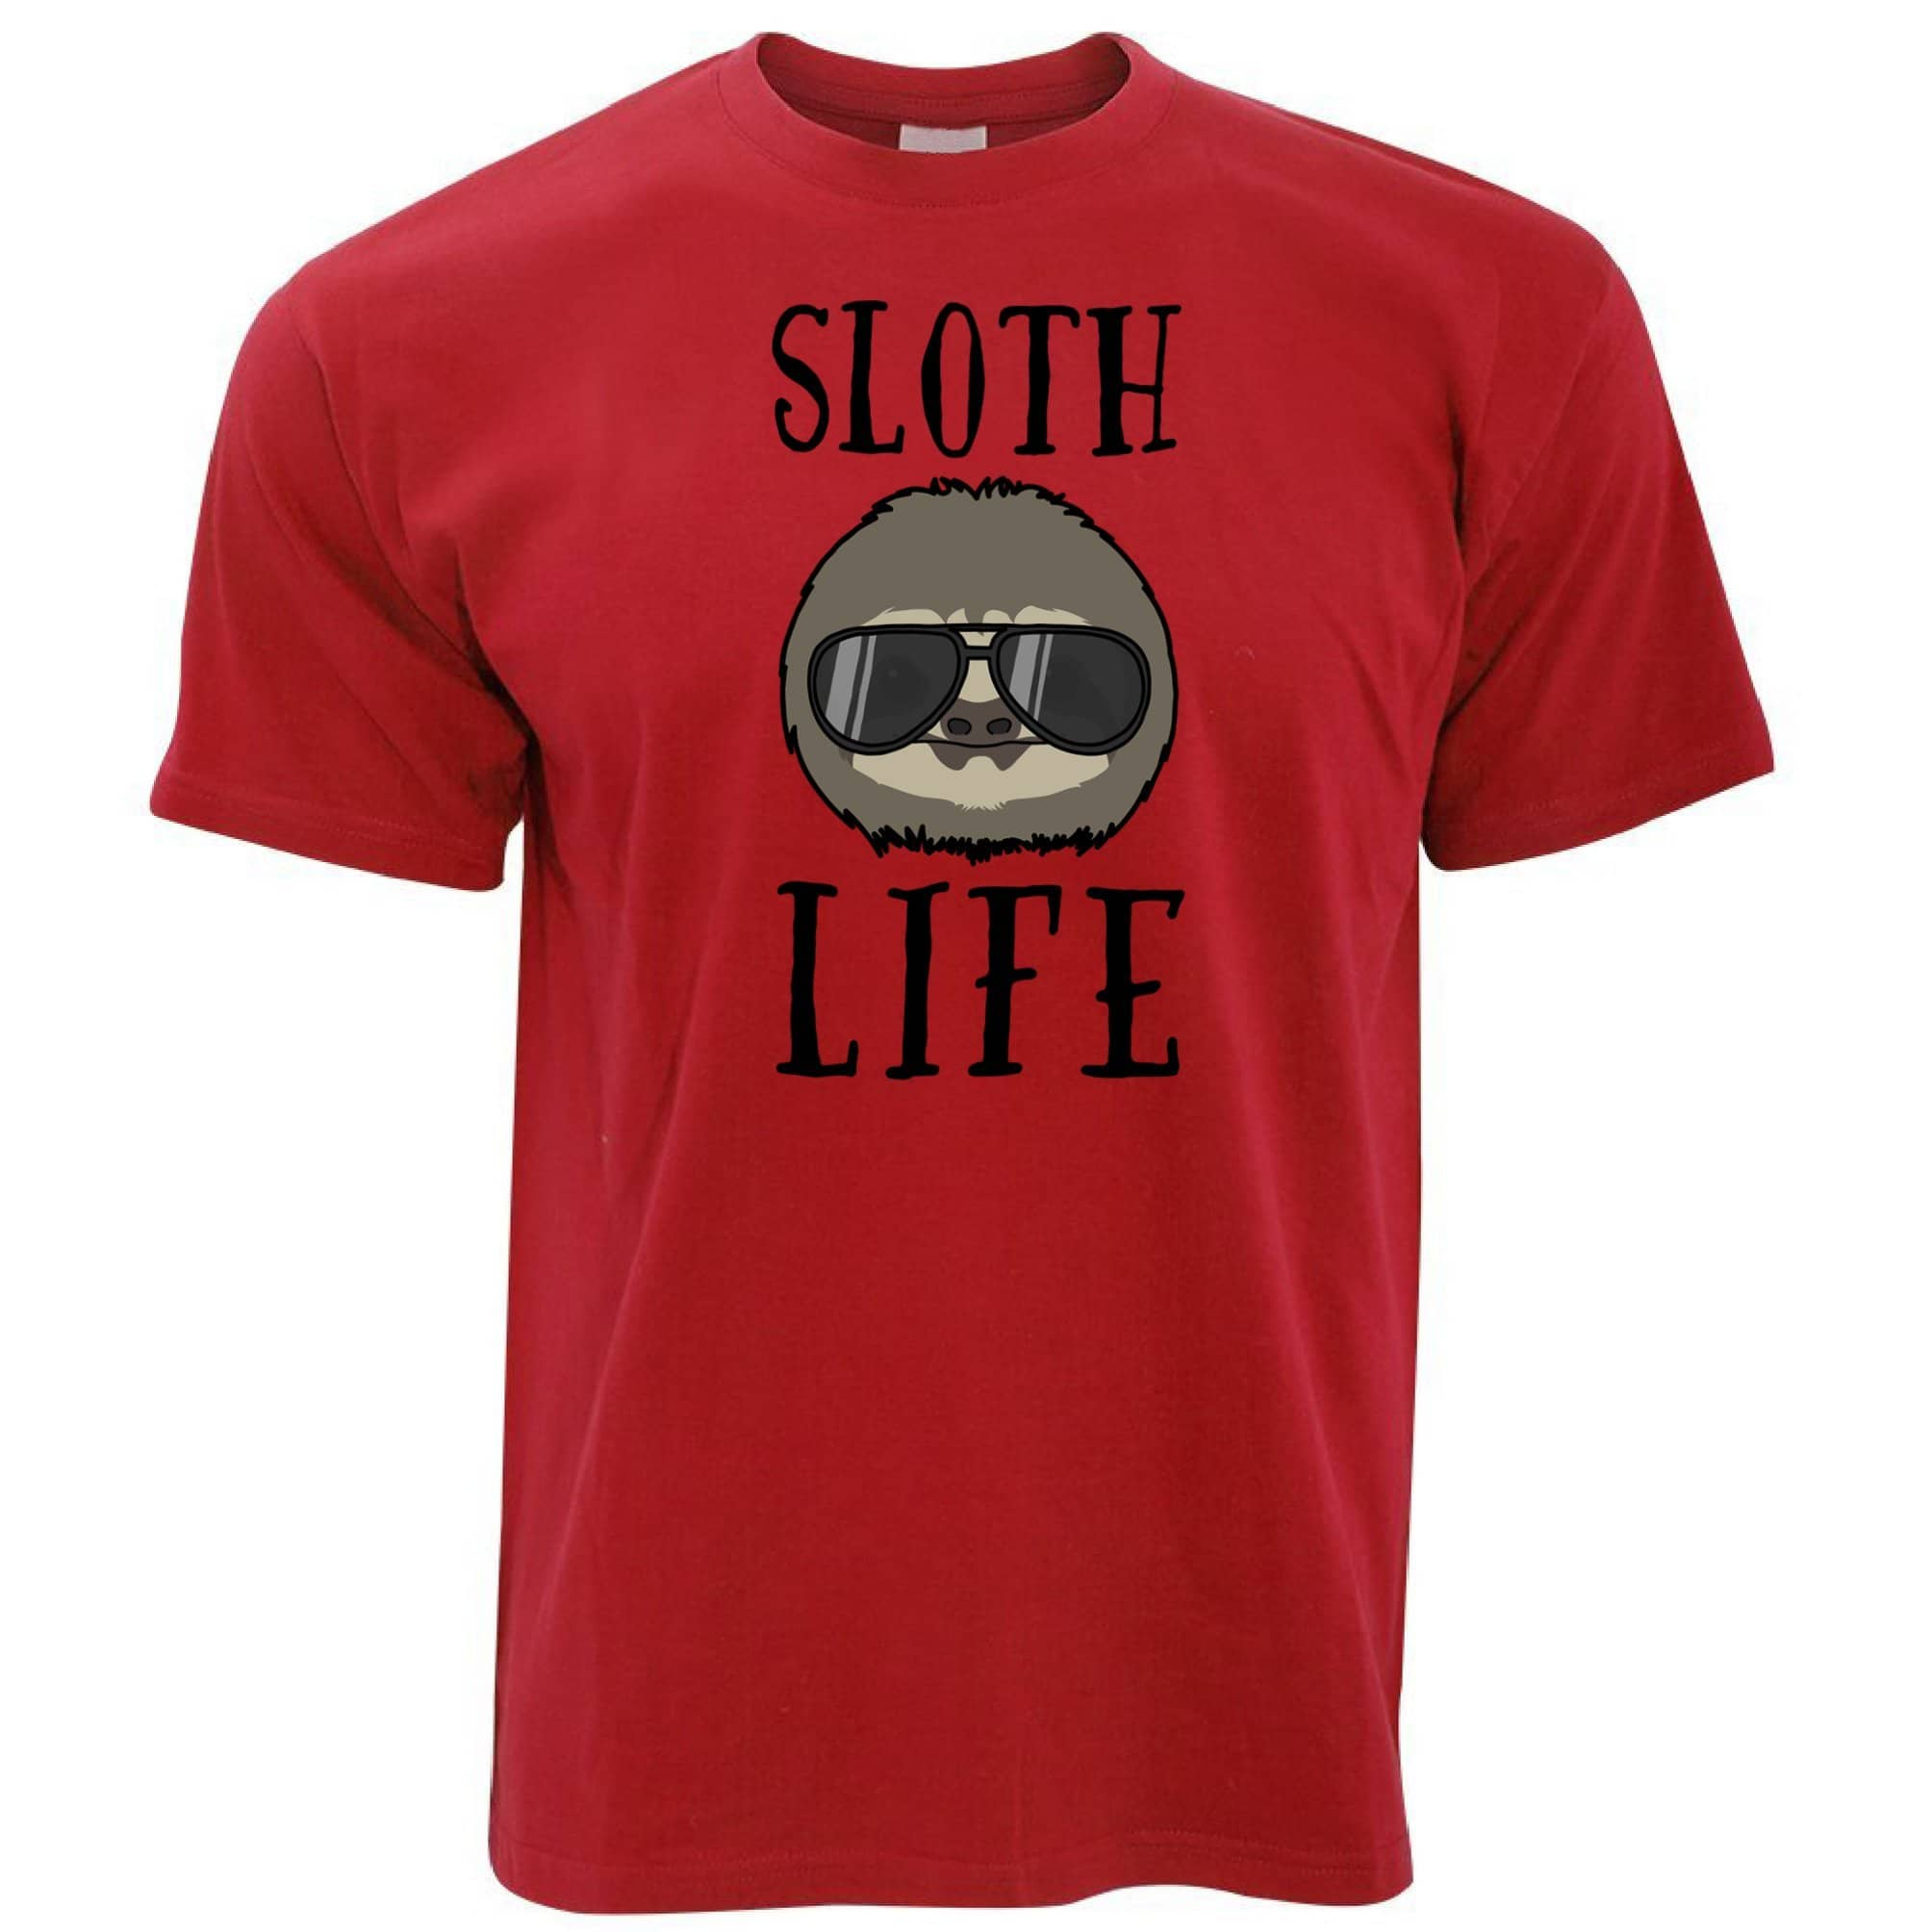 Novelty Animal T Shirt Sloth Life Pun Slogan